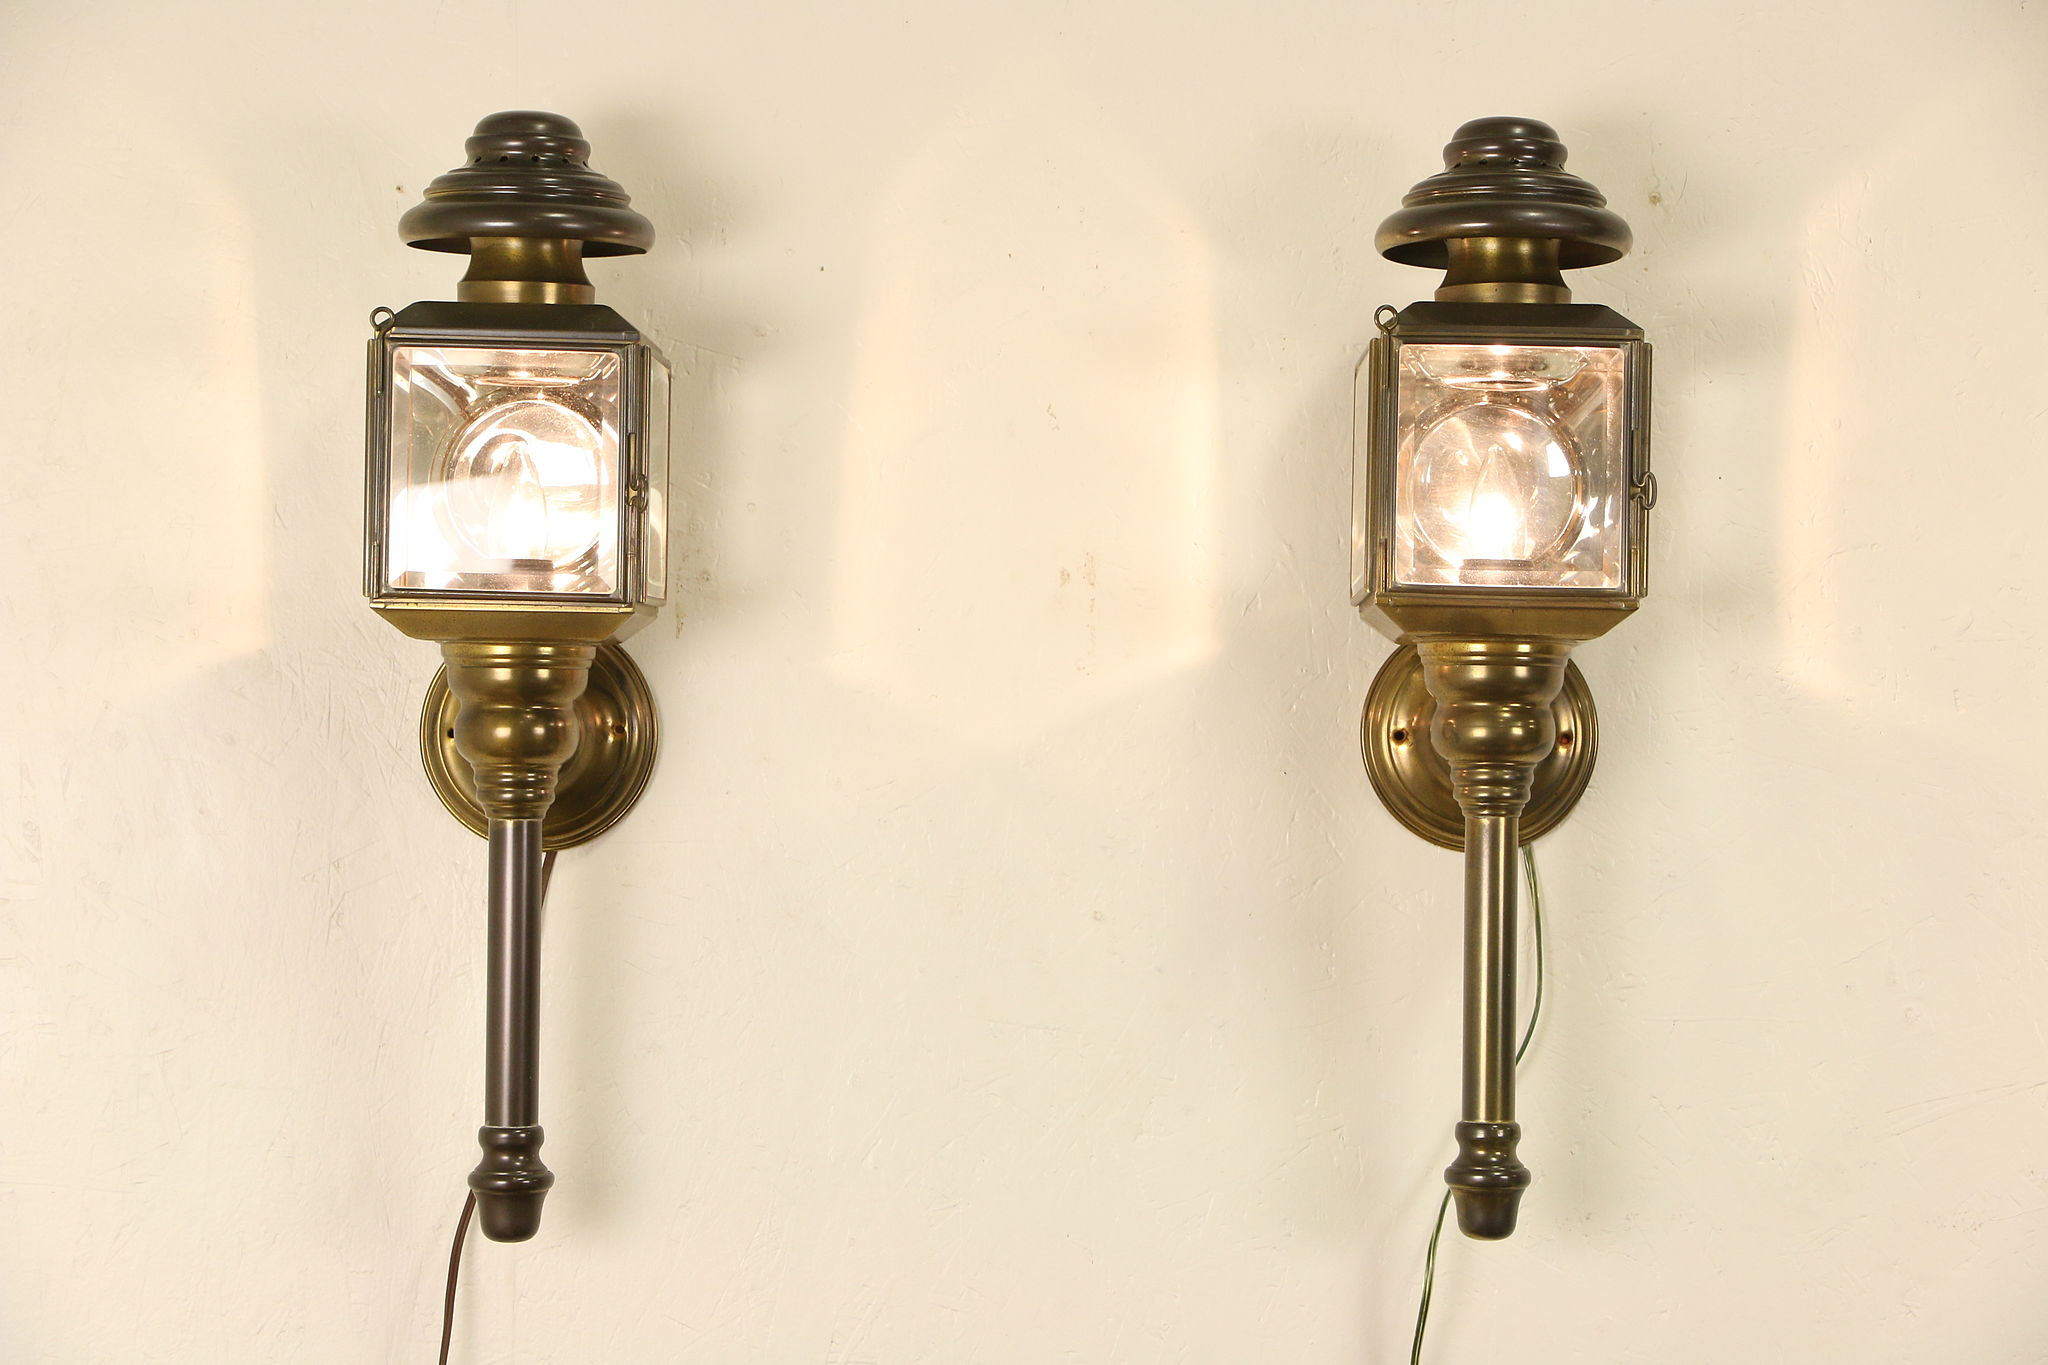 Sold Pair Of Brass 1890s Antique Coach Lamps Electrified As